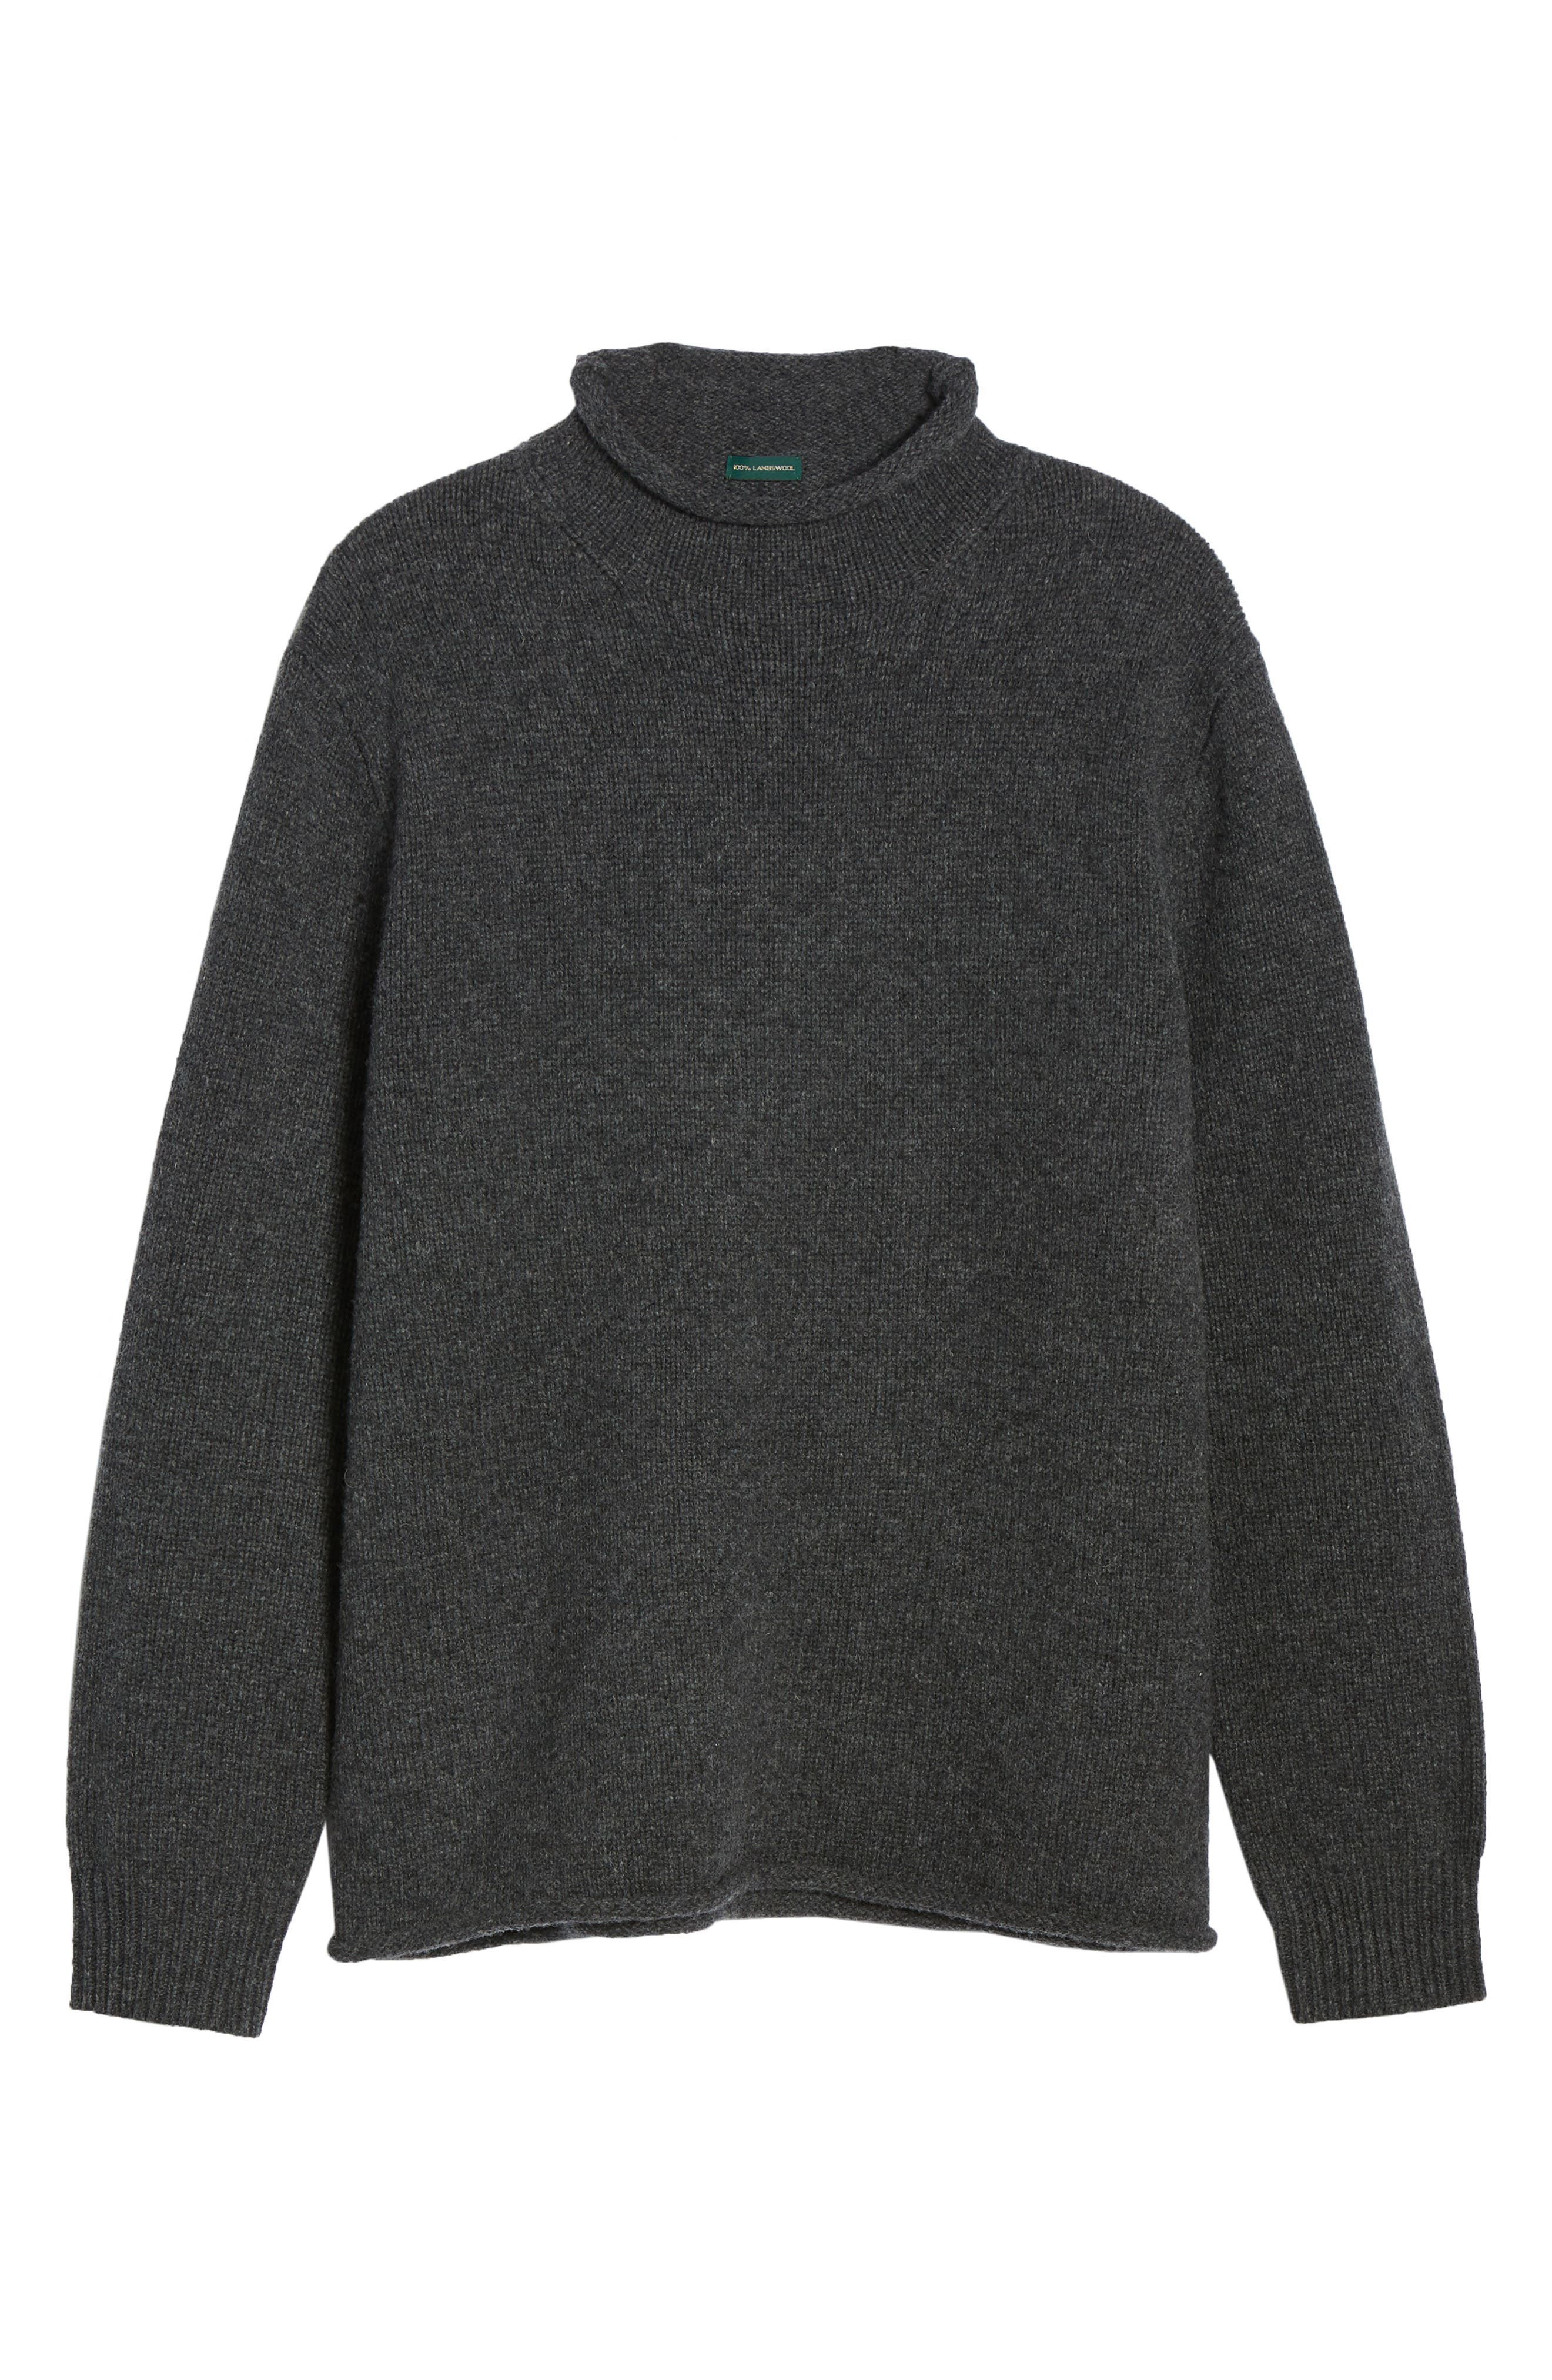 J.CREW,                             Relaxed Rollneck<sup>™</sup> Lambswool Sweater,                             Alternate thumbnail 6, color,                             020